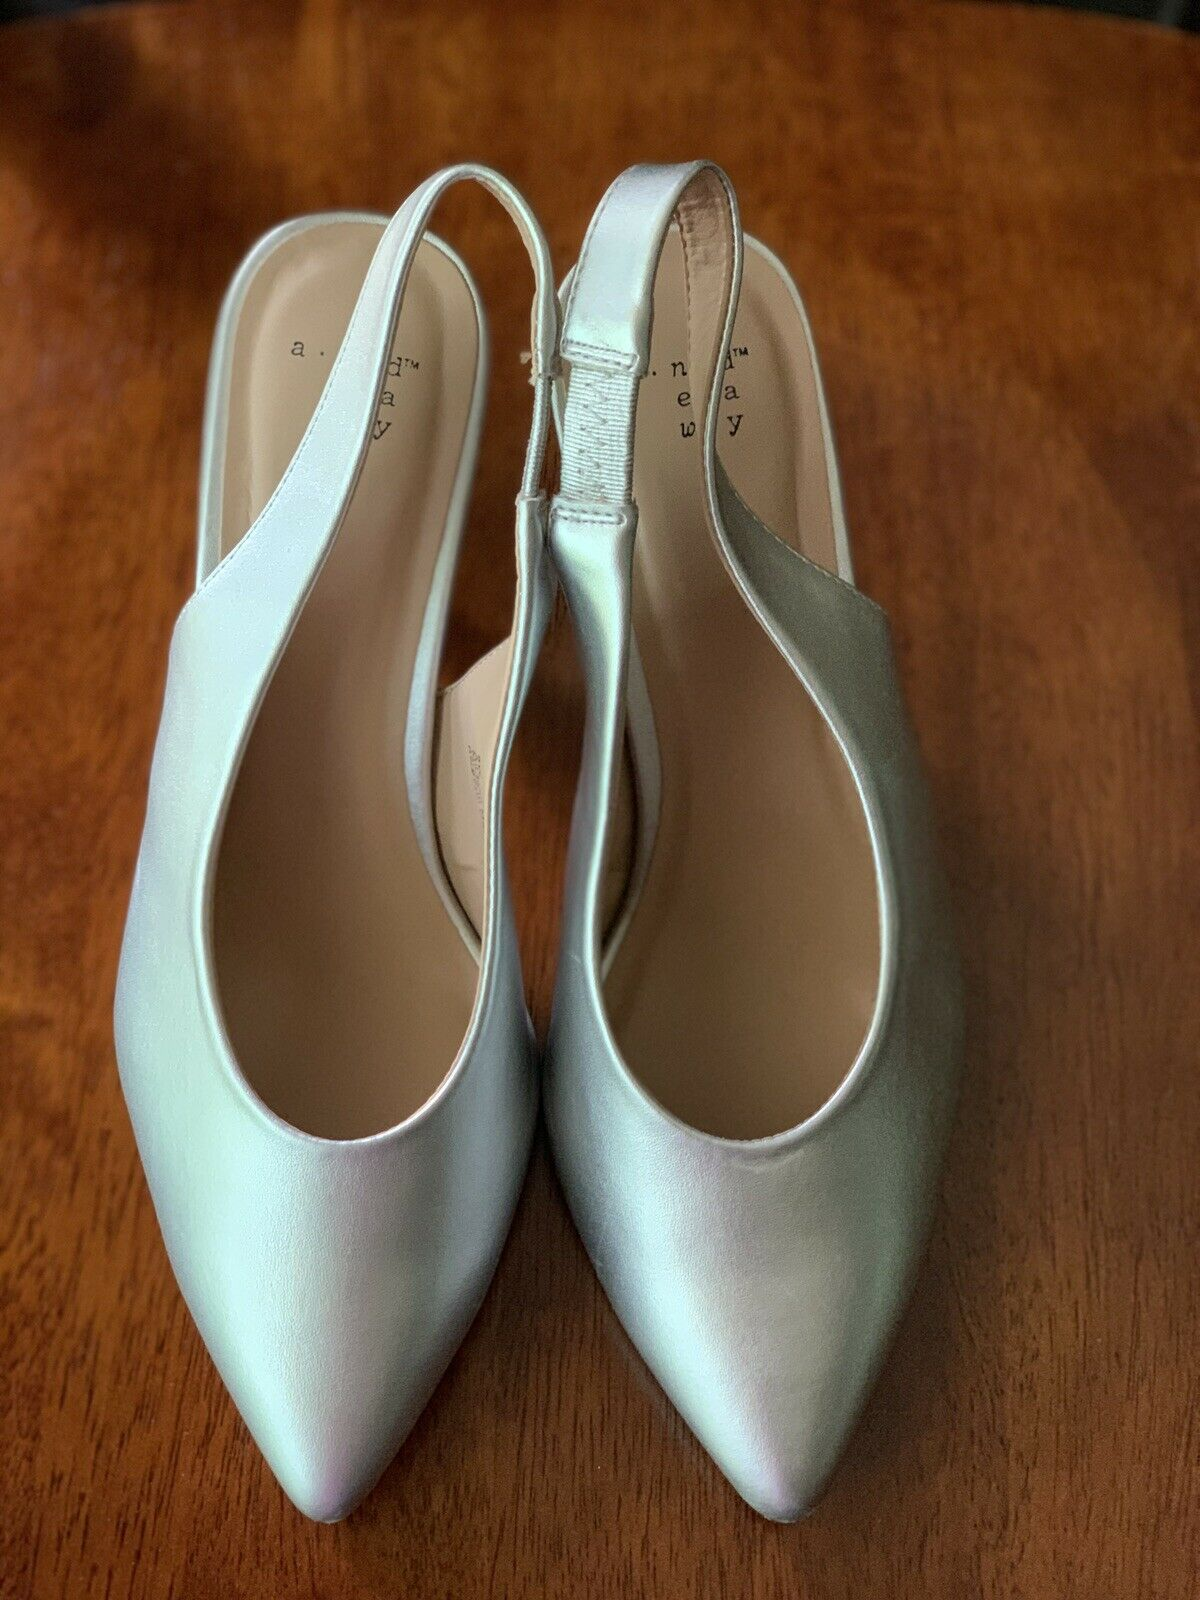 A New Day Women's Nettie Silver Faux Leather Sling Back High Vamp Heeled Pumps